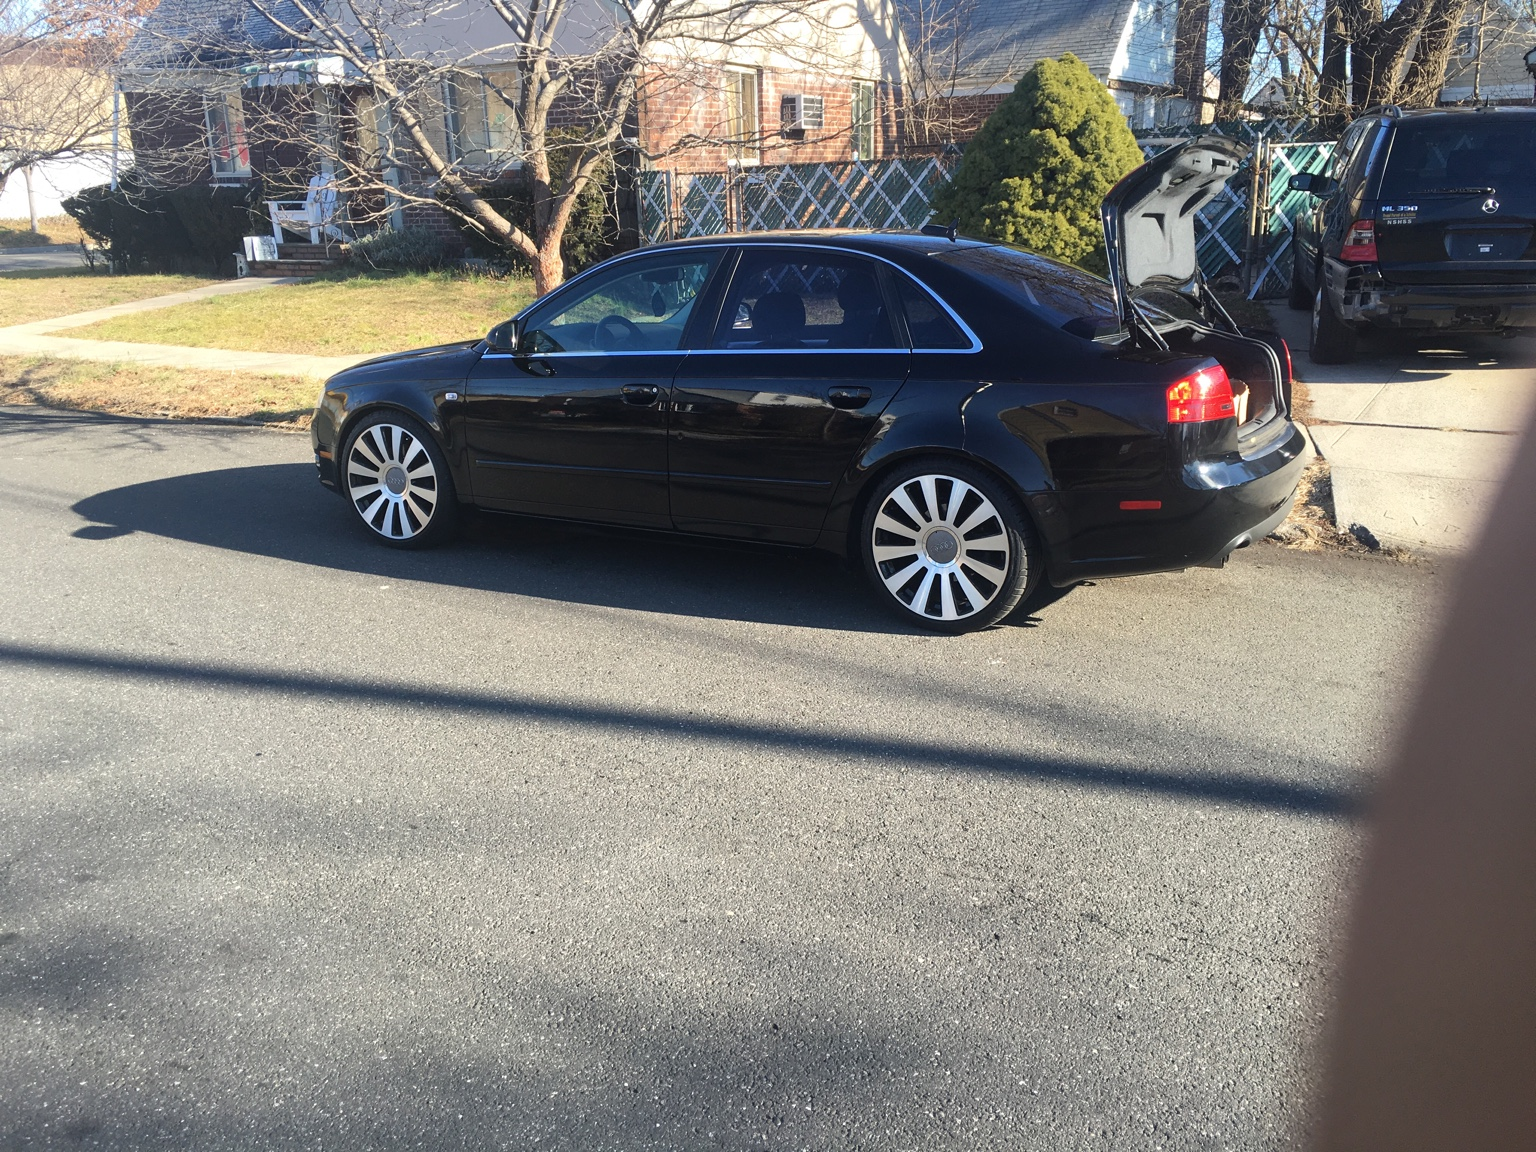 For sale 2006 Audi A4 97k stage 1 tune ,new timing belt and water pump,new  oil pump,no check engine light ,recent nys inspection,no leaks ,H&R  lowering ...